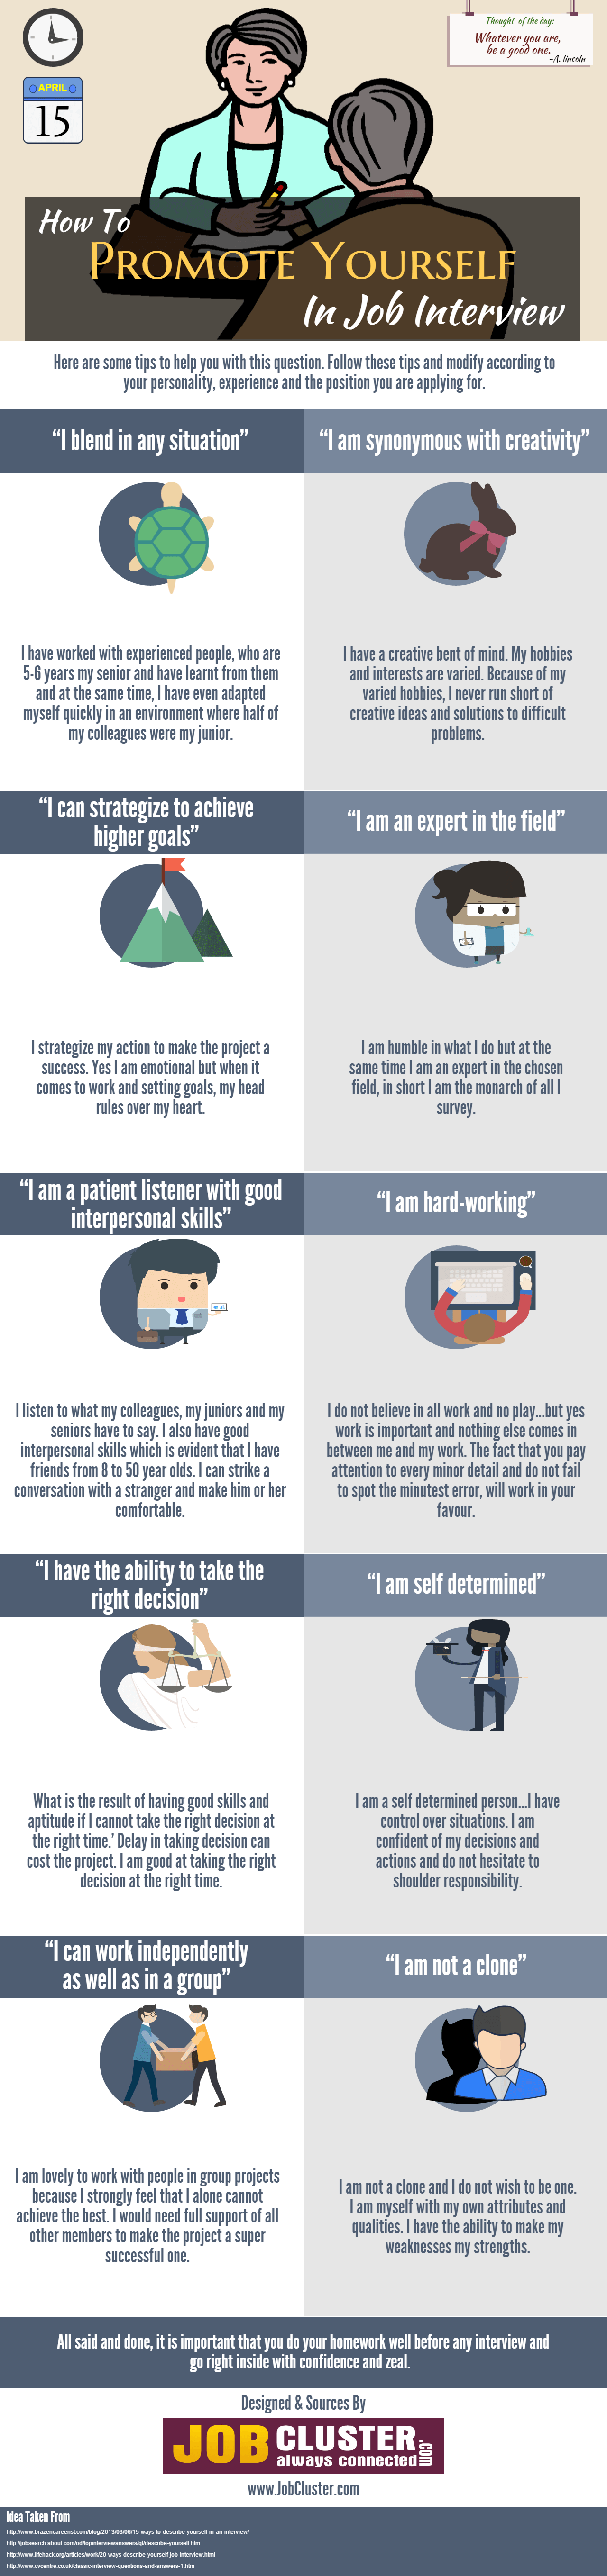 How to Describe Yourself in the Job Interview- infographic